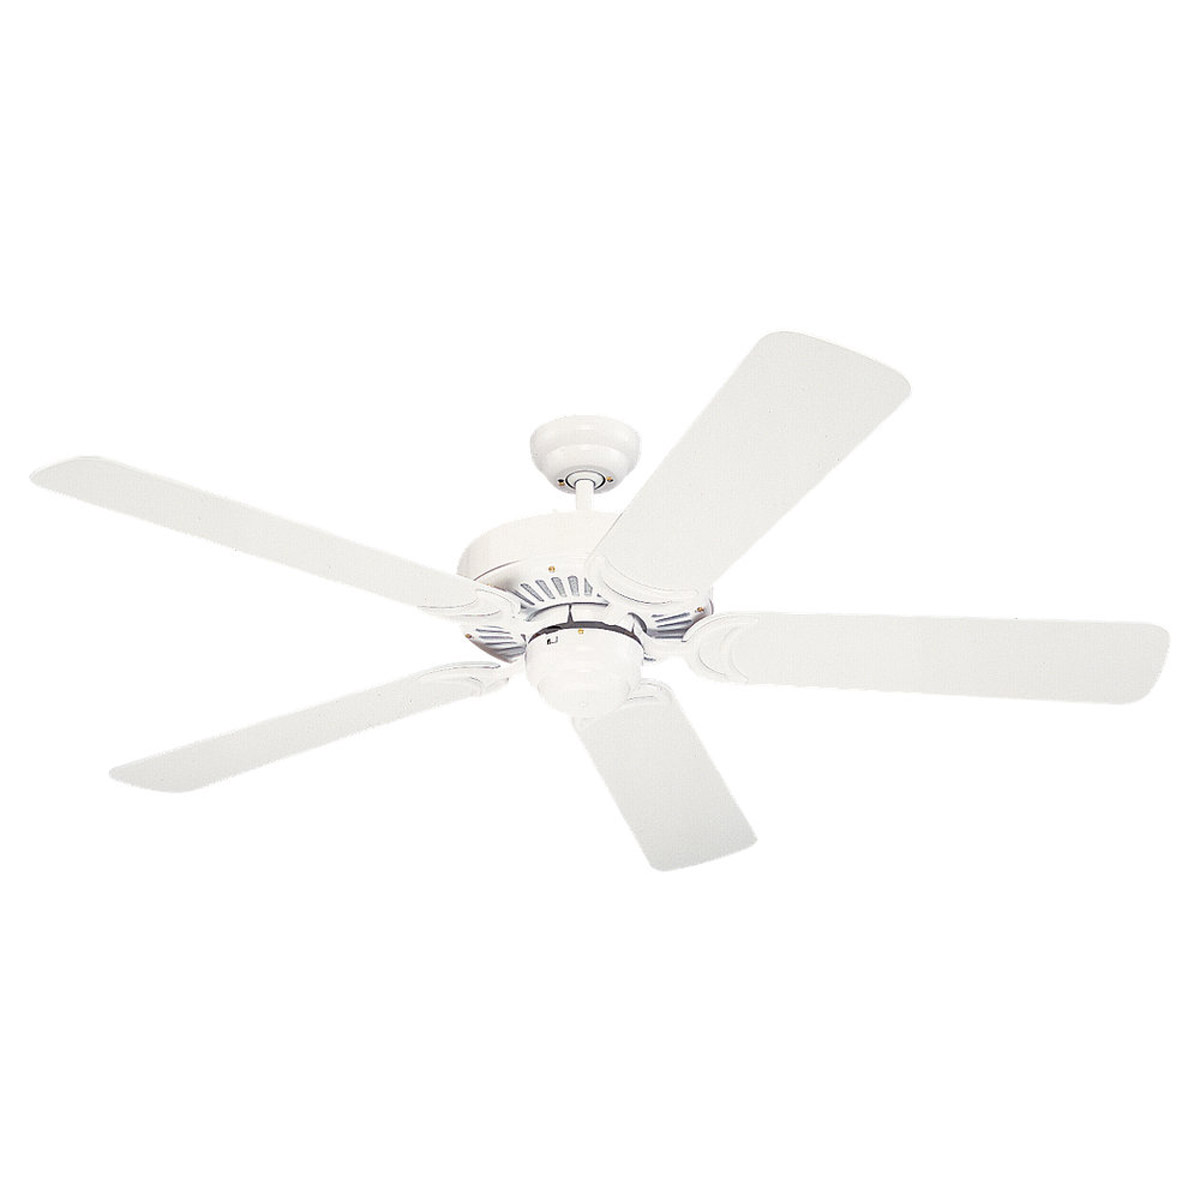 Sea Gull Lighting 52in Celebrity Deluxe Ceiling Fan in White 1535-15